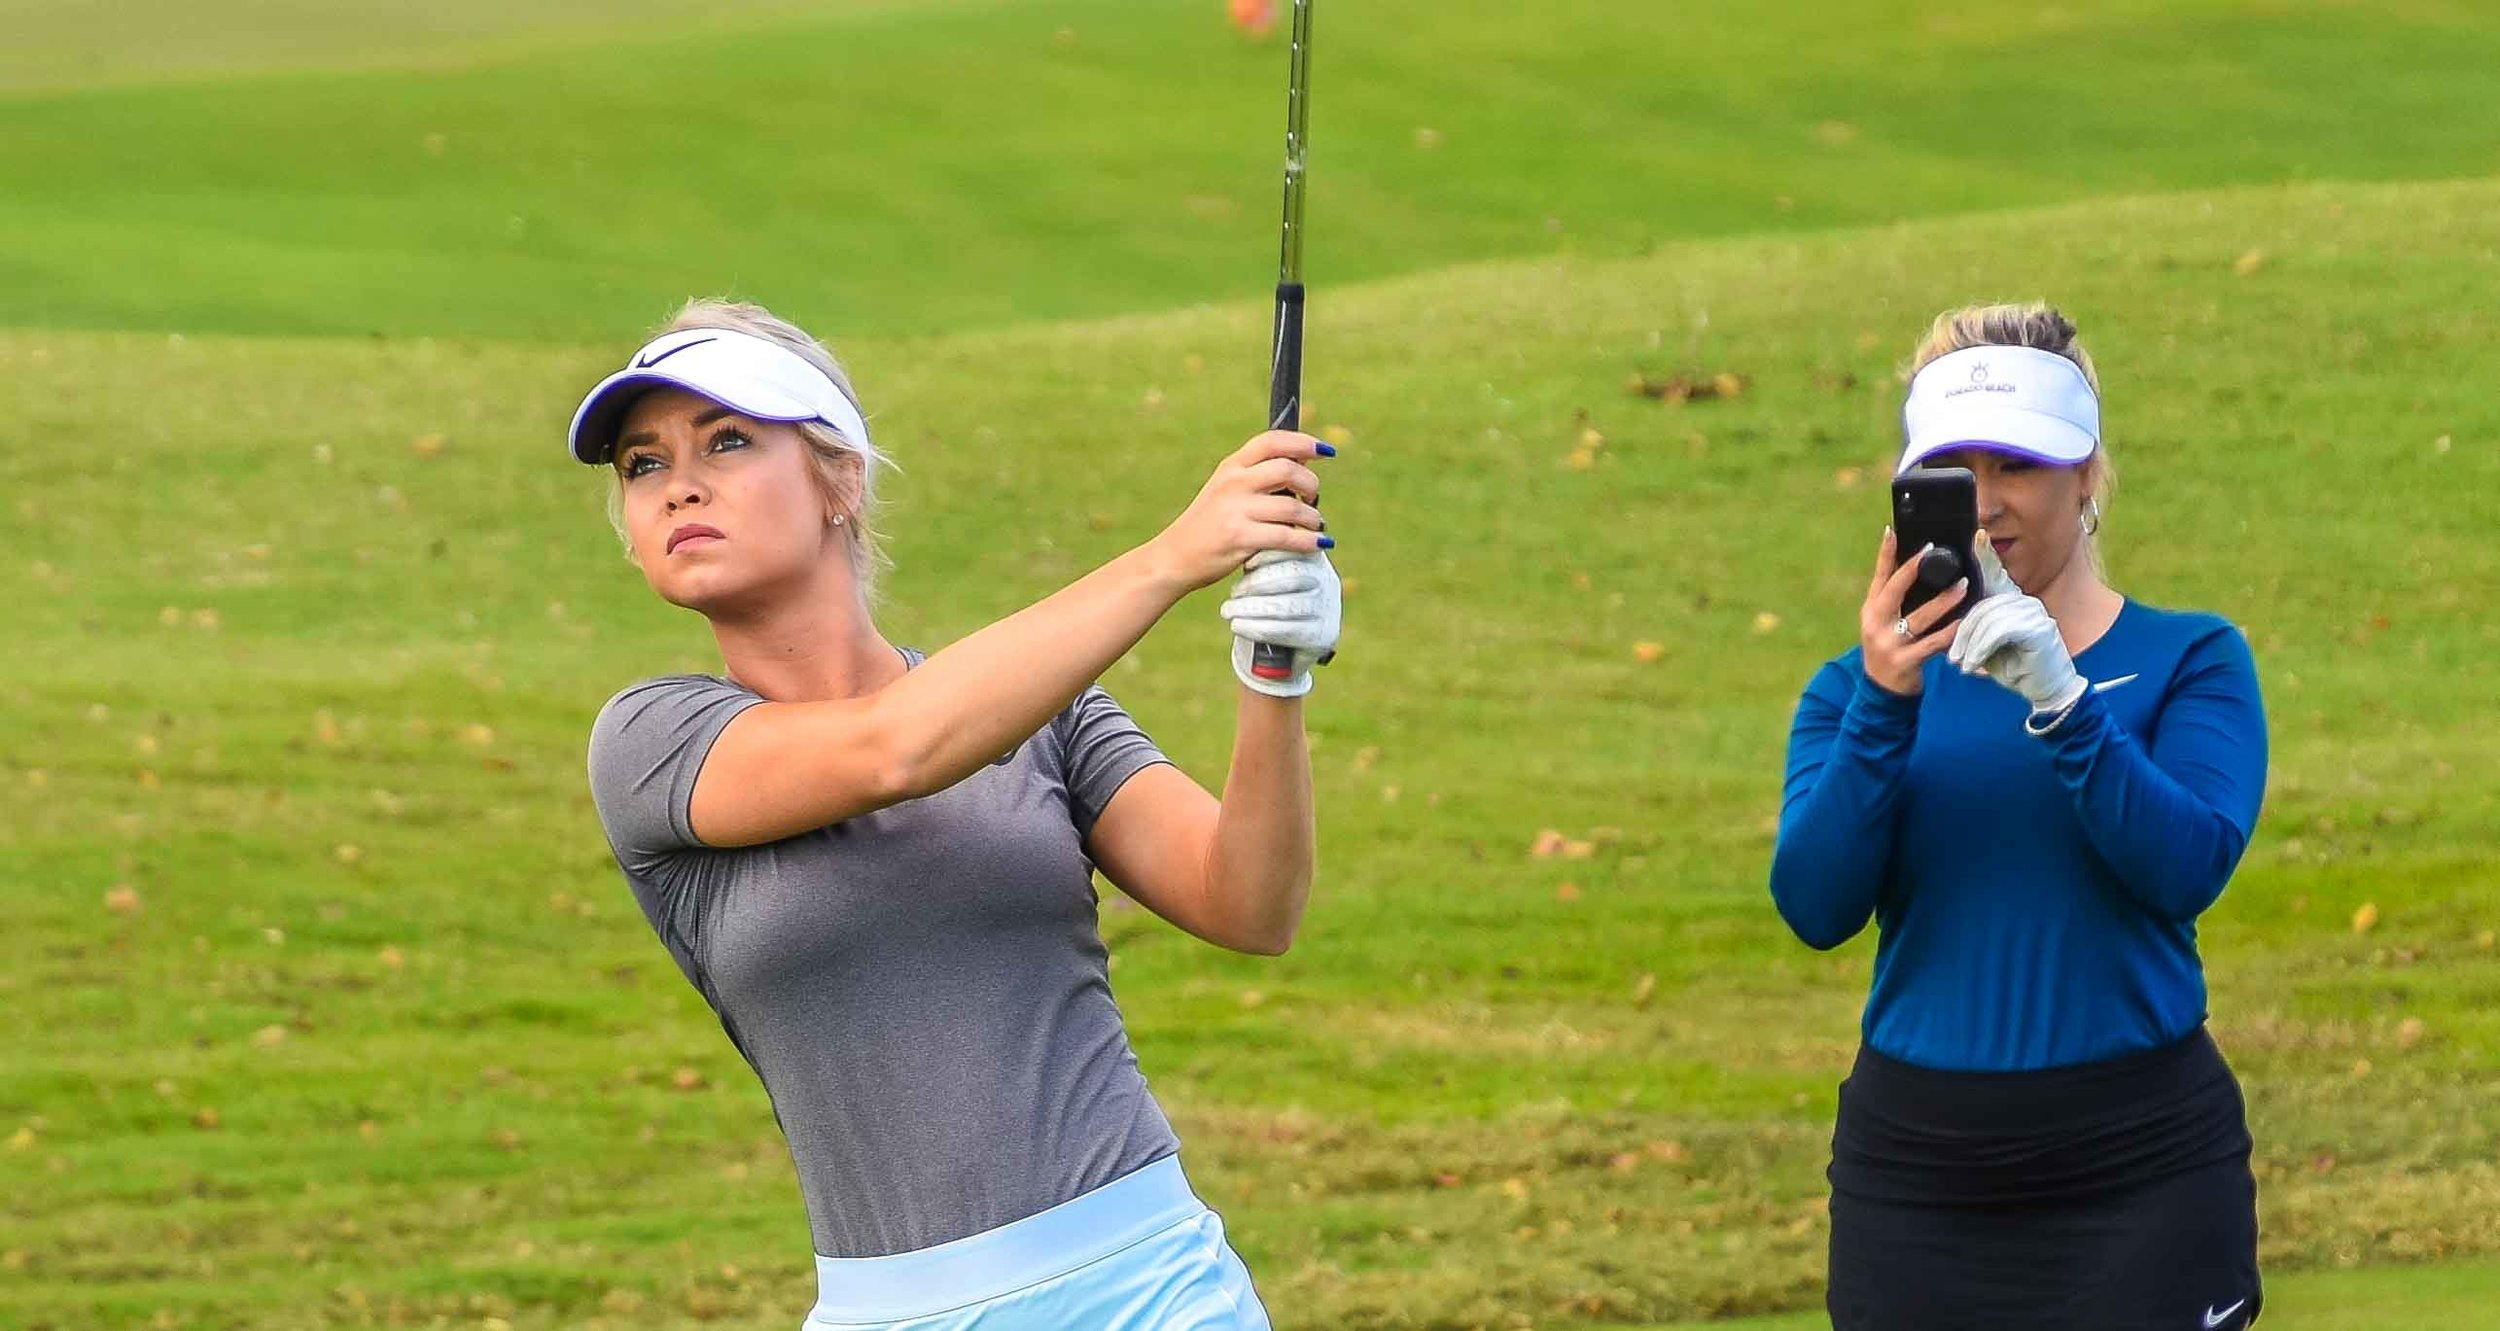 Just about every swing was documented by this duo of powerful Instagram influencers.